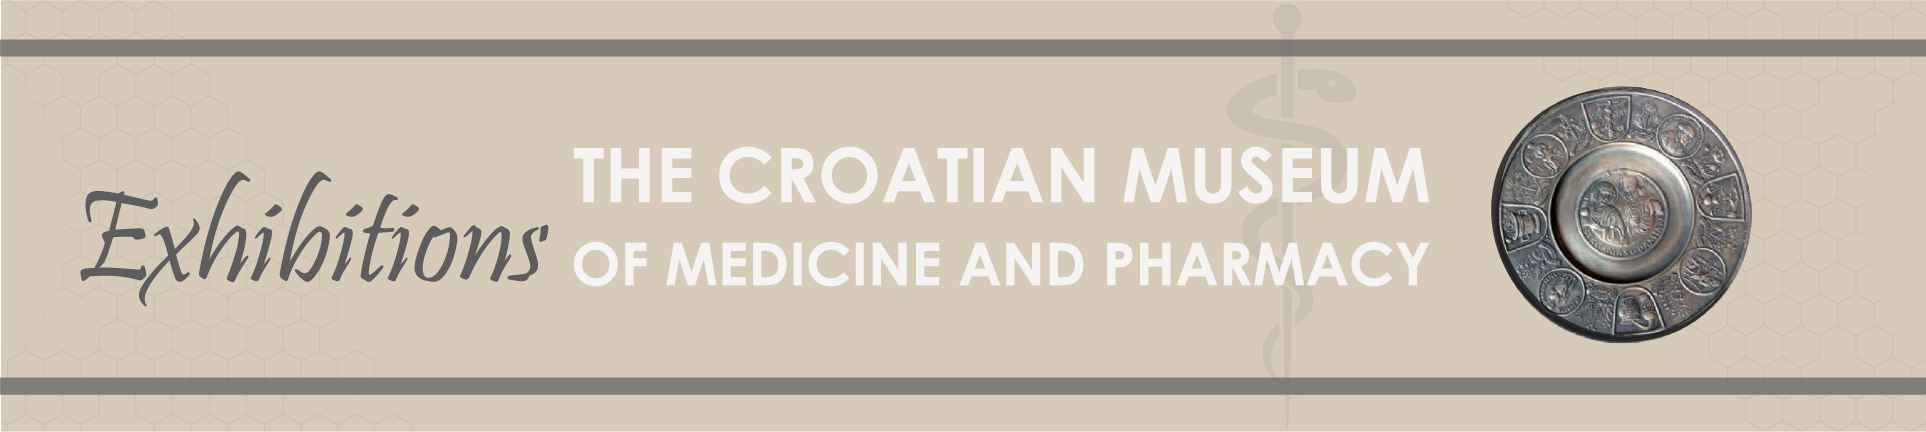 The Croatian Museum of Medicine and Pharmacy - Exhibitions